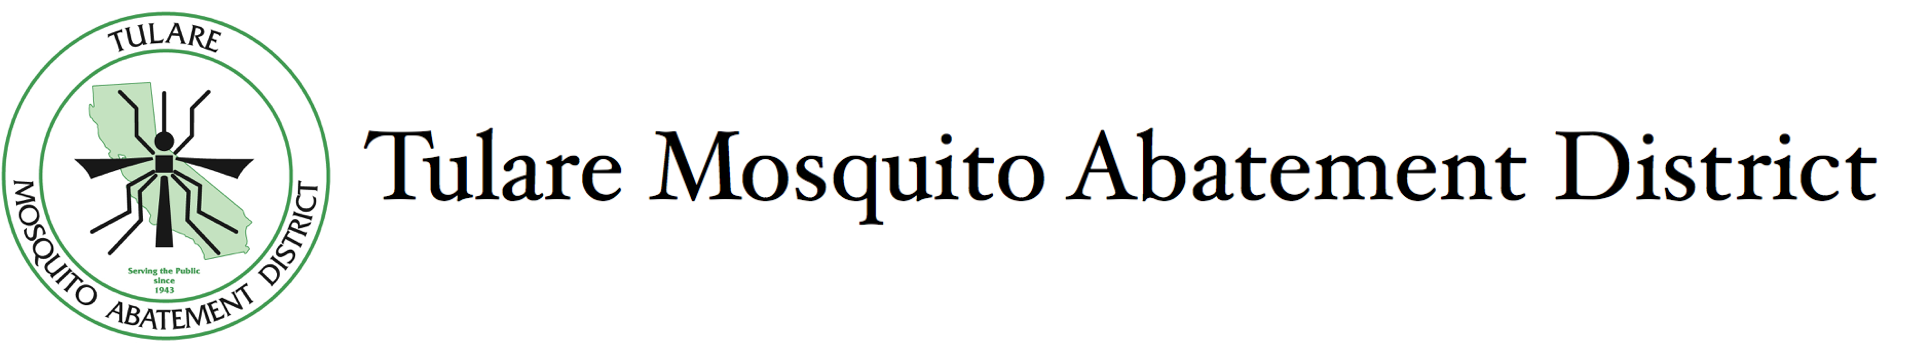 Tulare Mosquito Abatement District